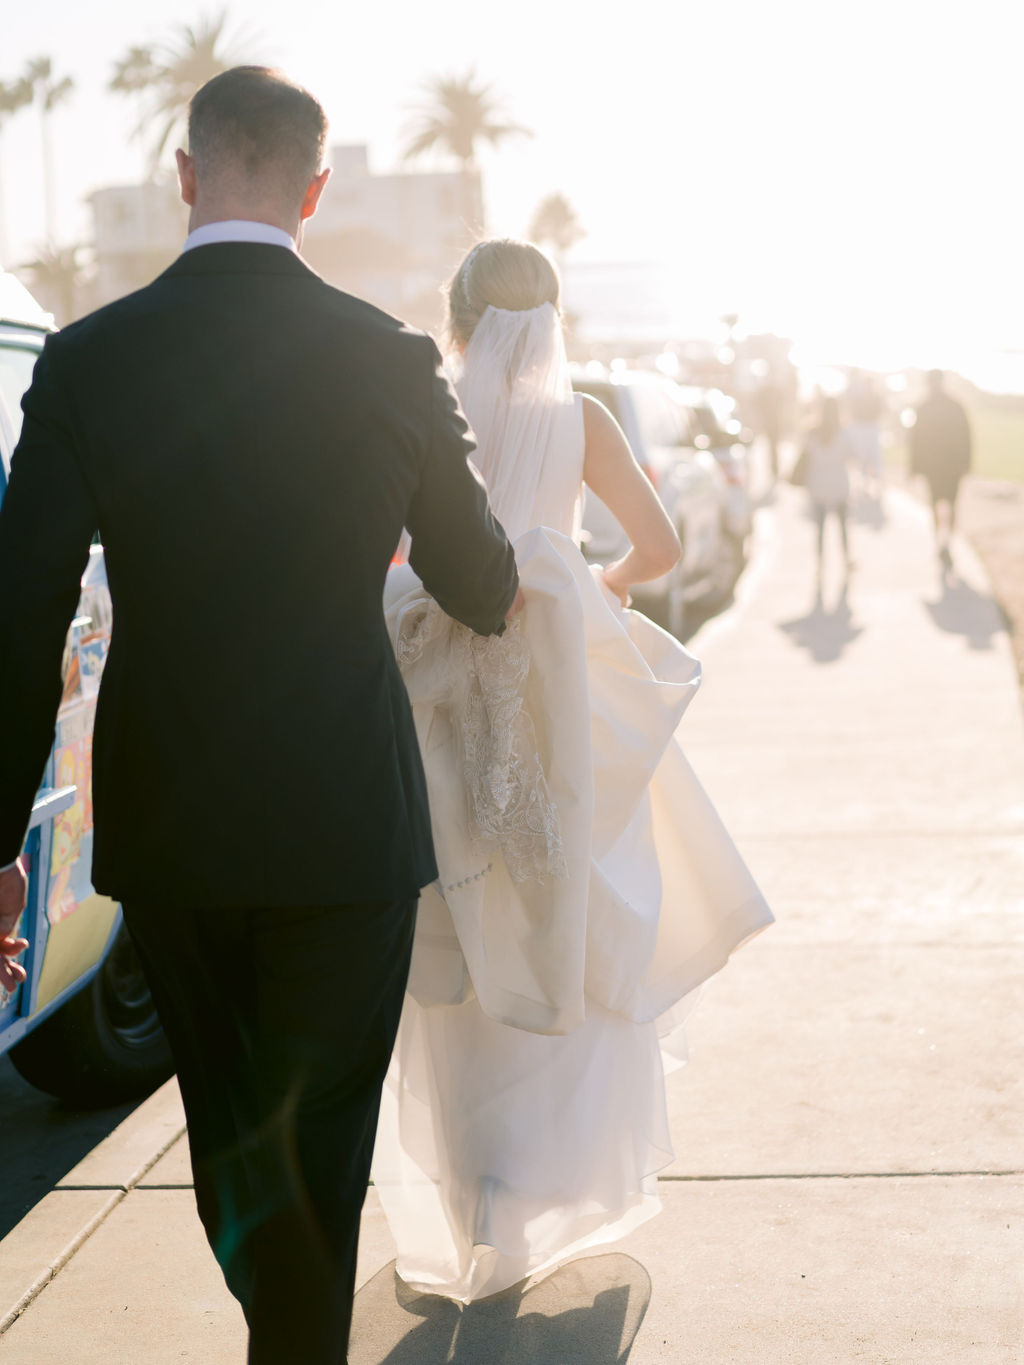 wedding couple walking during the sunset